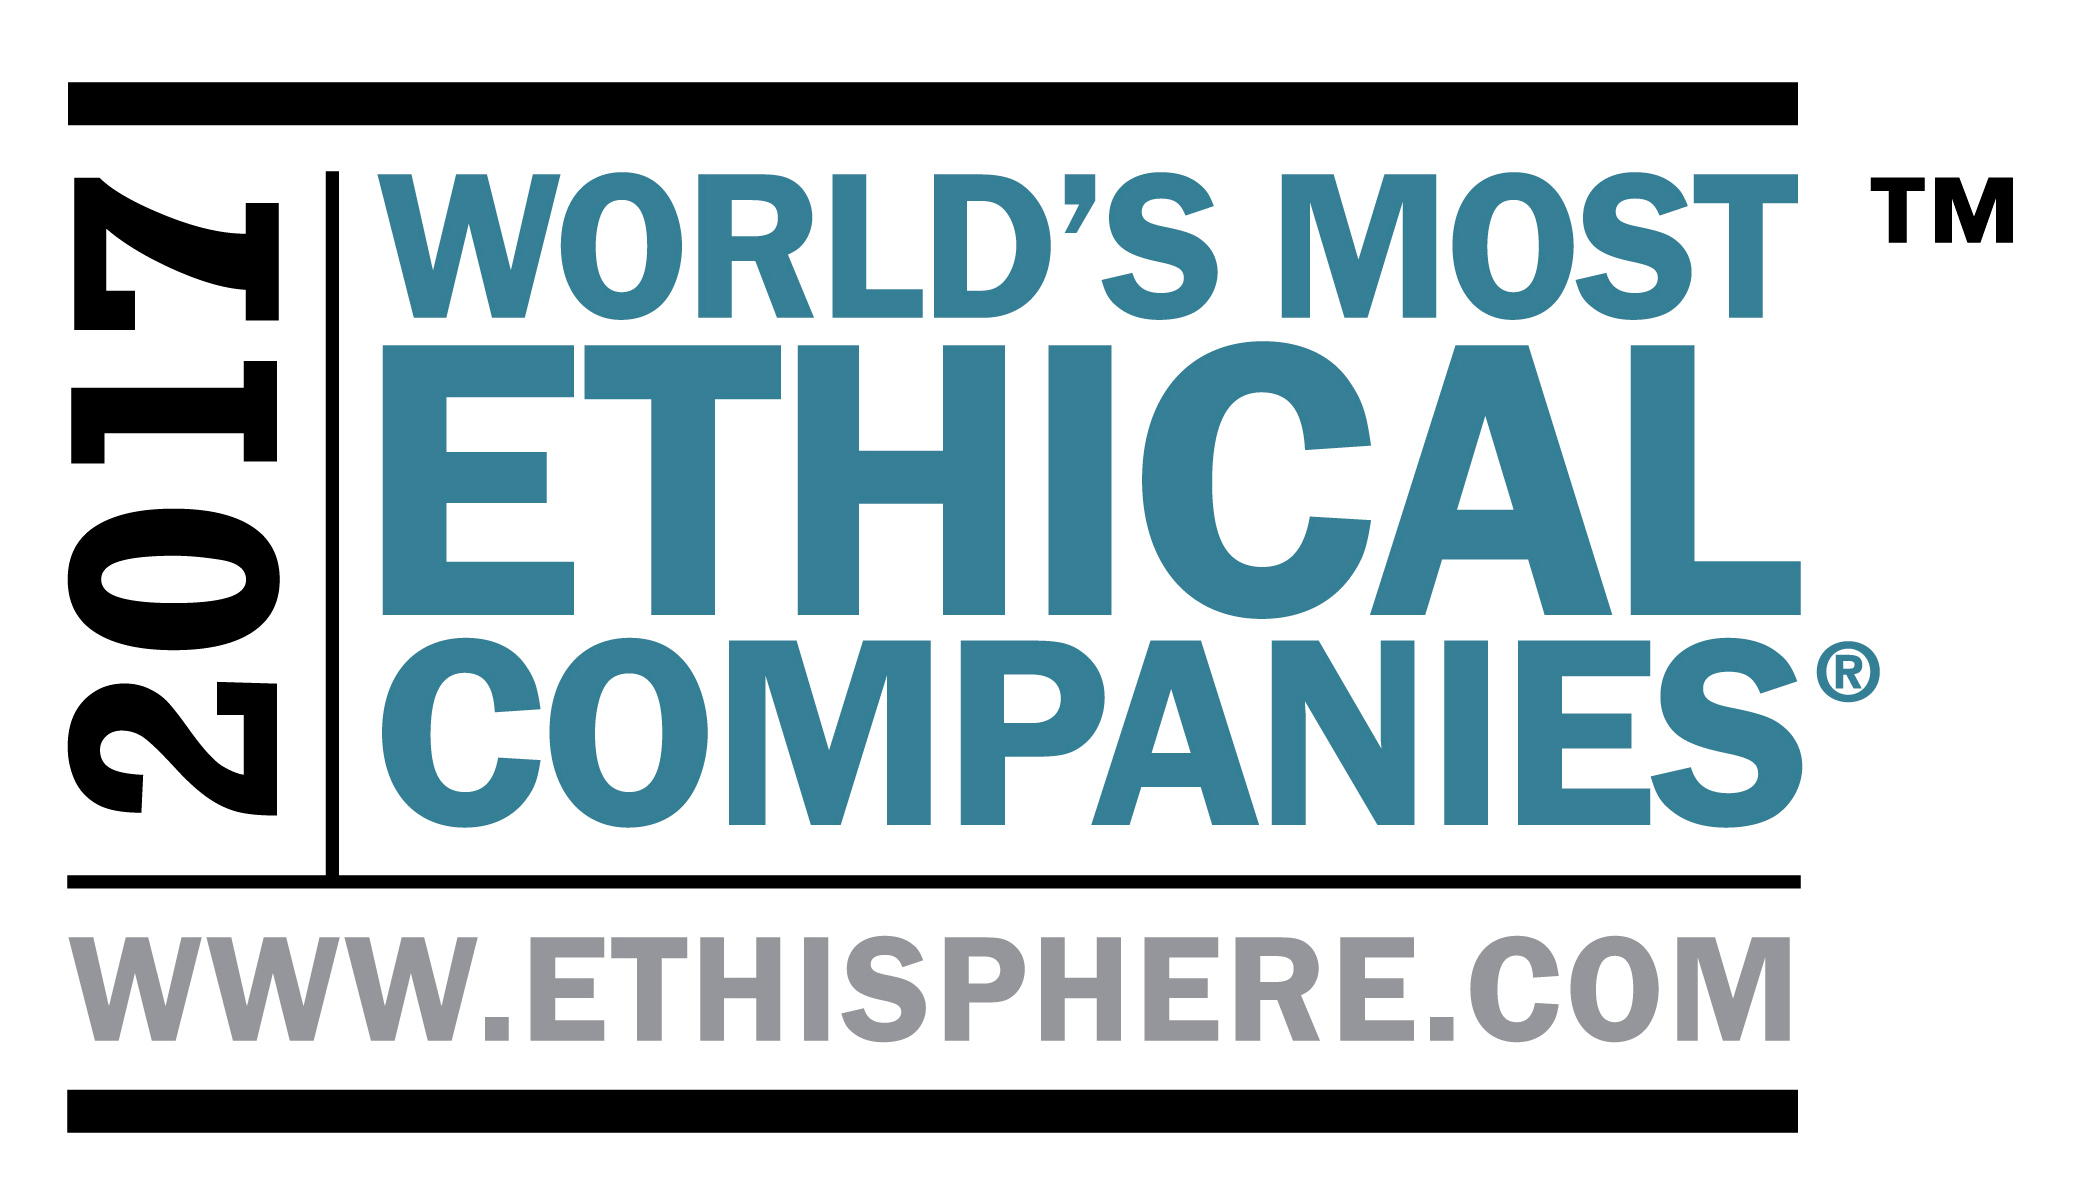 Brightstar Corp., the world's leading mobile services company for managing devices and accessories across the wireless ecosystem, has been recognized by the Ethisphere Institute, a global leader in defining and advancing the standards of ethical business practices, as a 2017 World's Most Ethical Company®. (Photo: Business Wire)